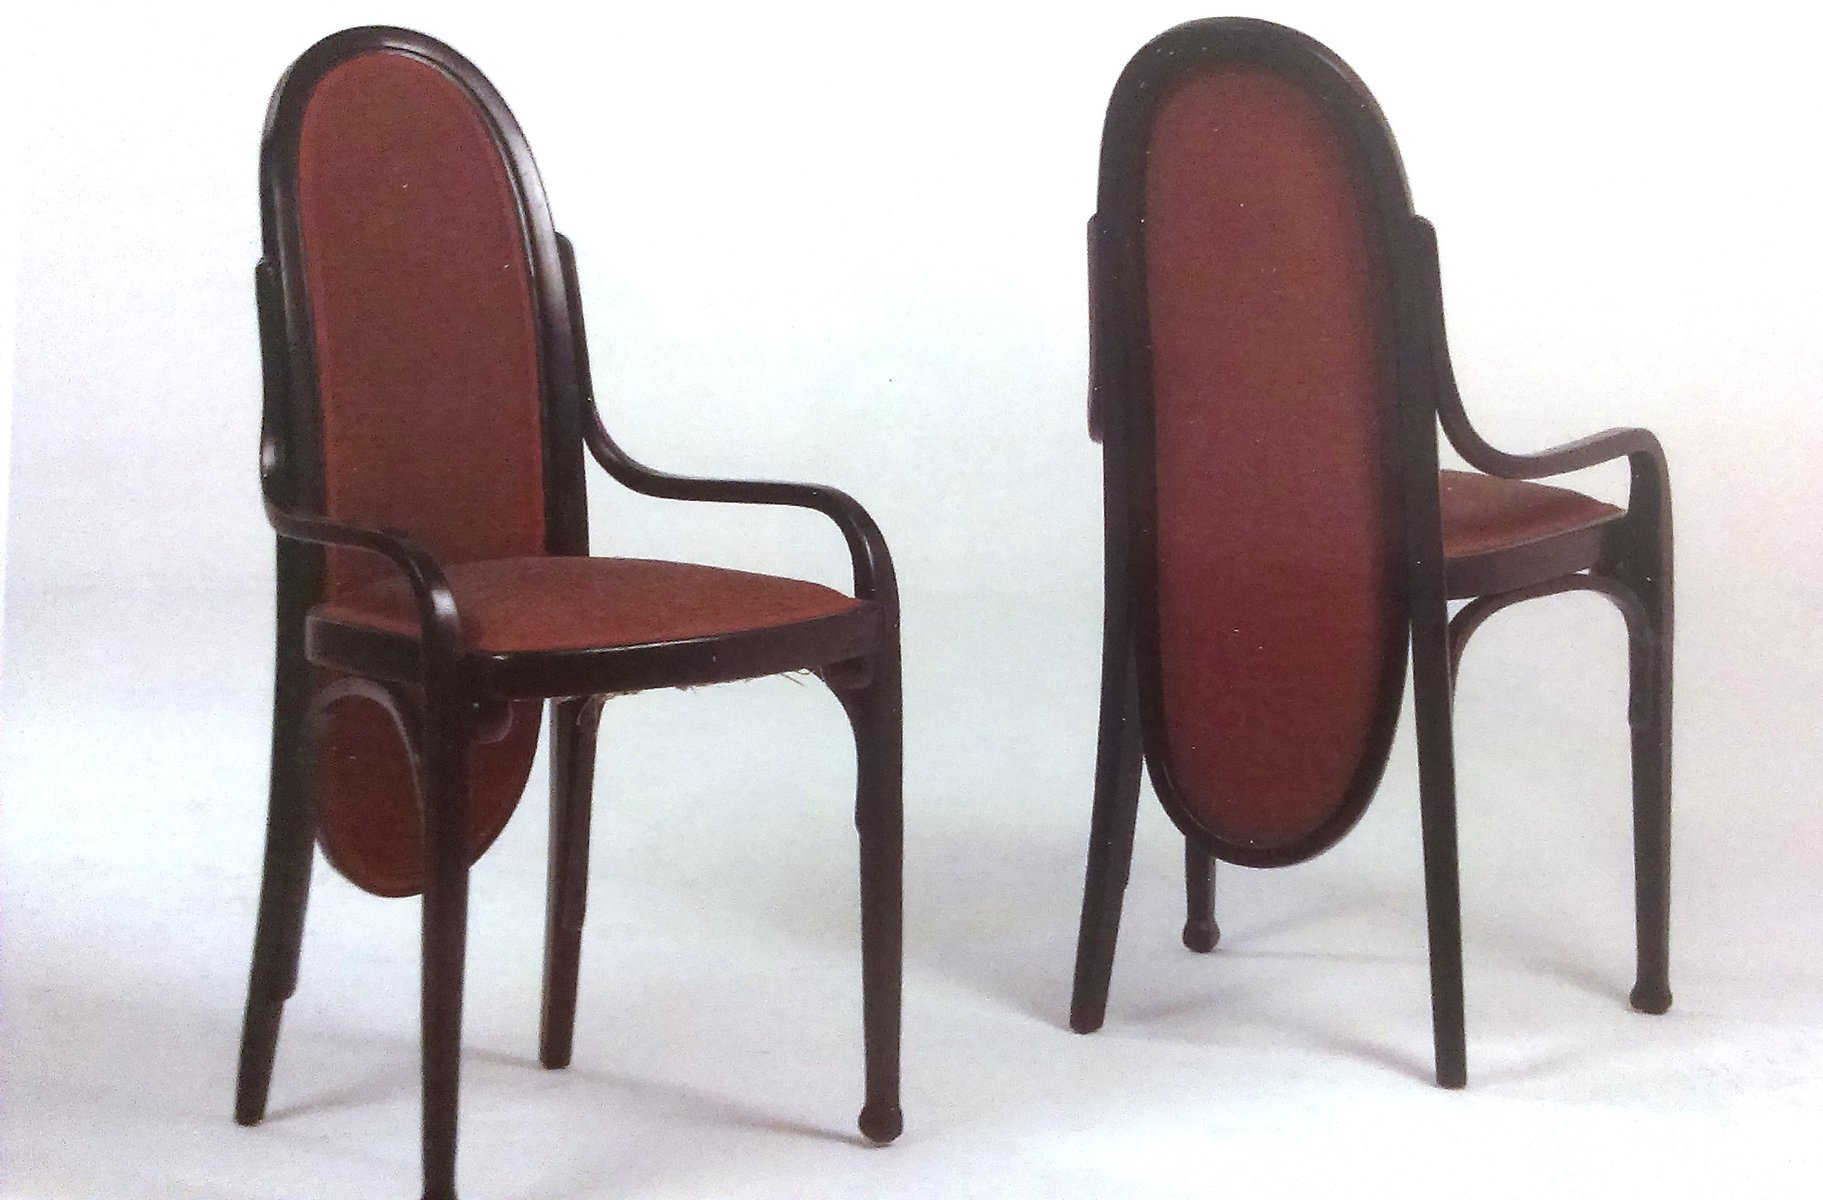 Antique Living Room Set from Thonet / Mundus for sale at Pamono